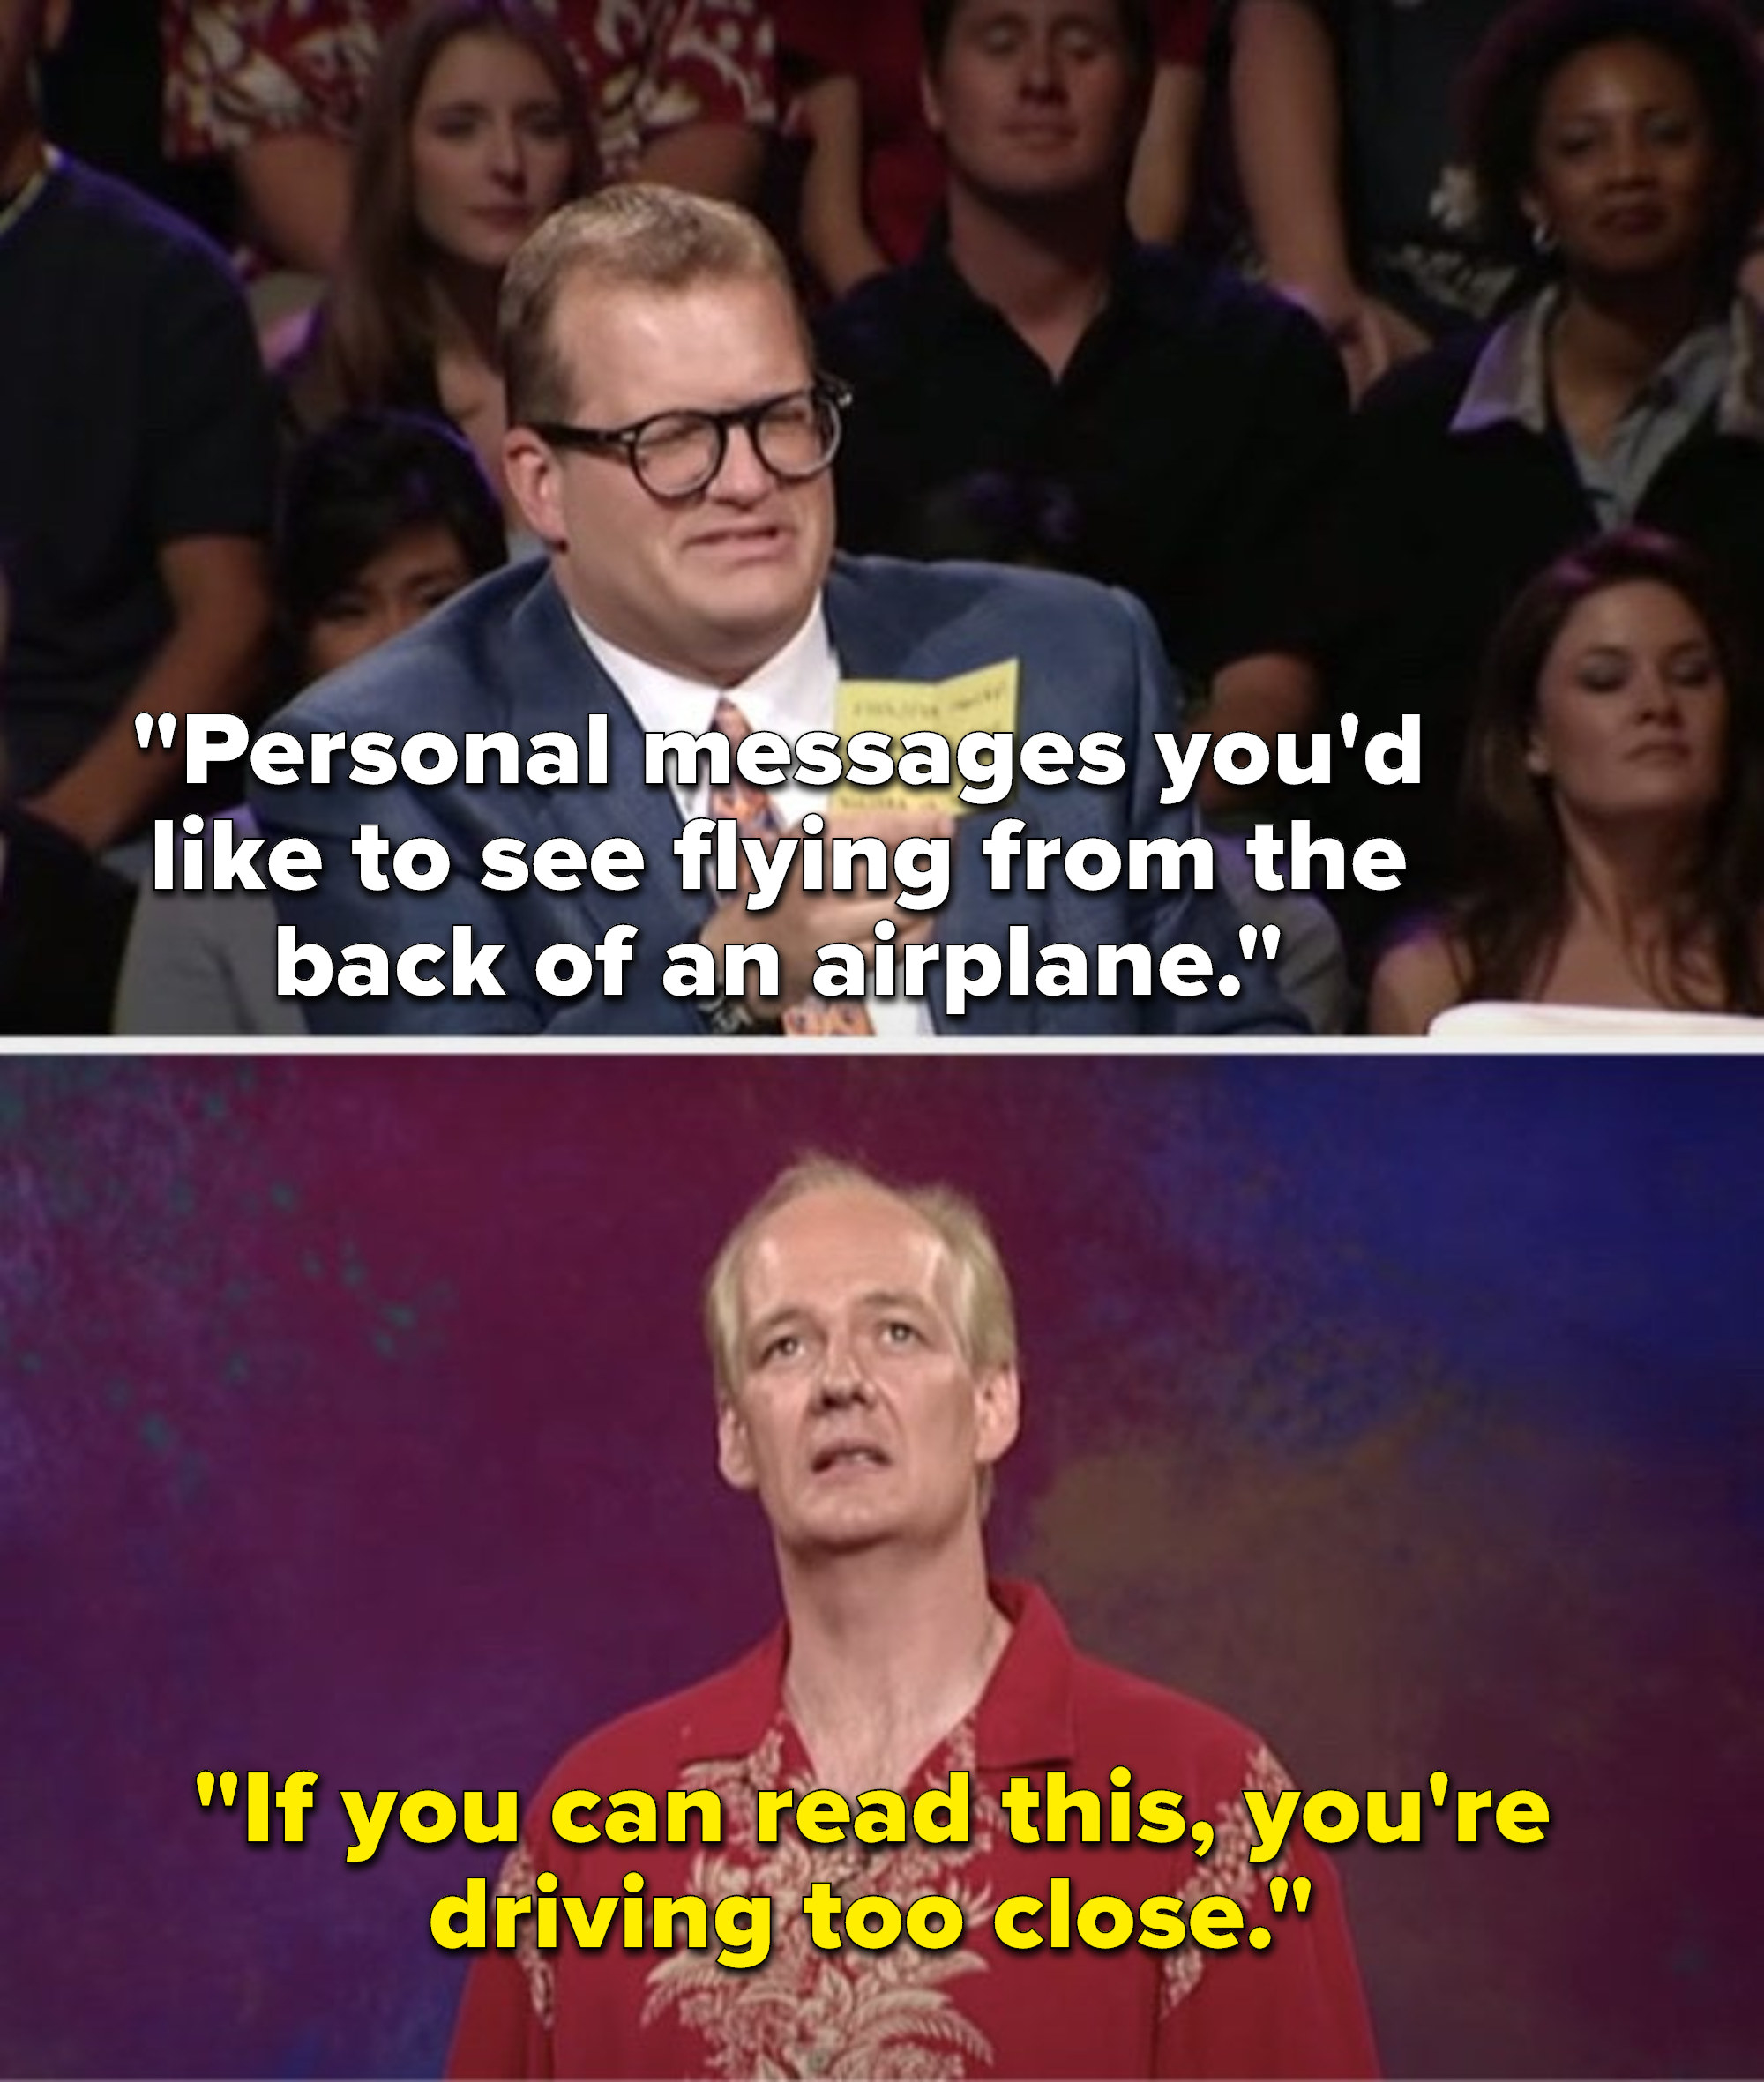 """Carey says,""""Personal messages you'd like to see flying from the back of an airplane,"""" and Mochrie says, """"If you can read this, you're driving too close"""""""